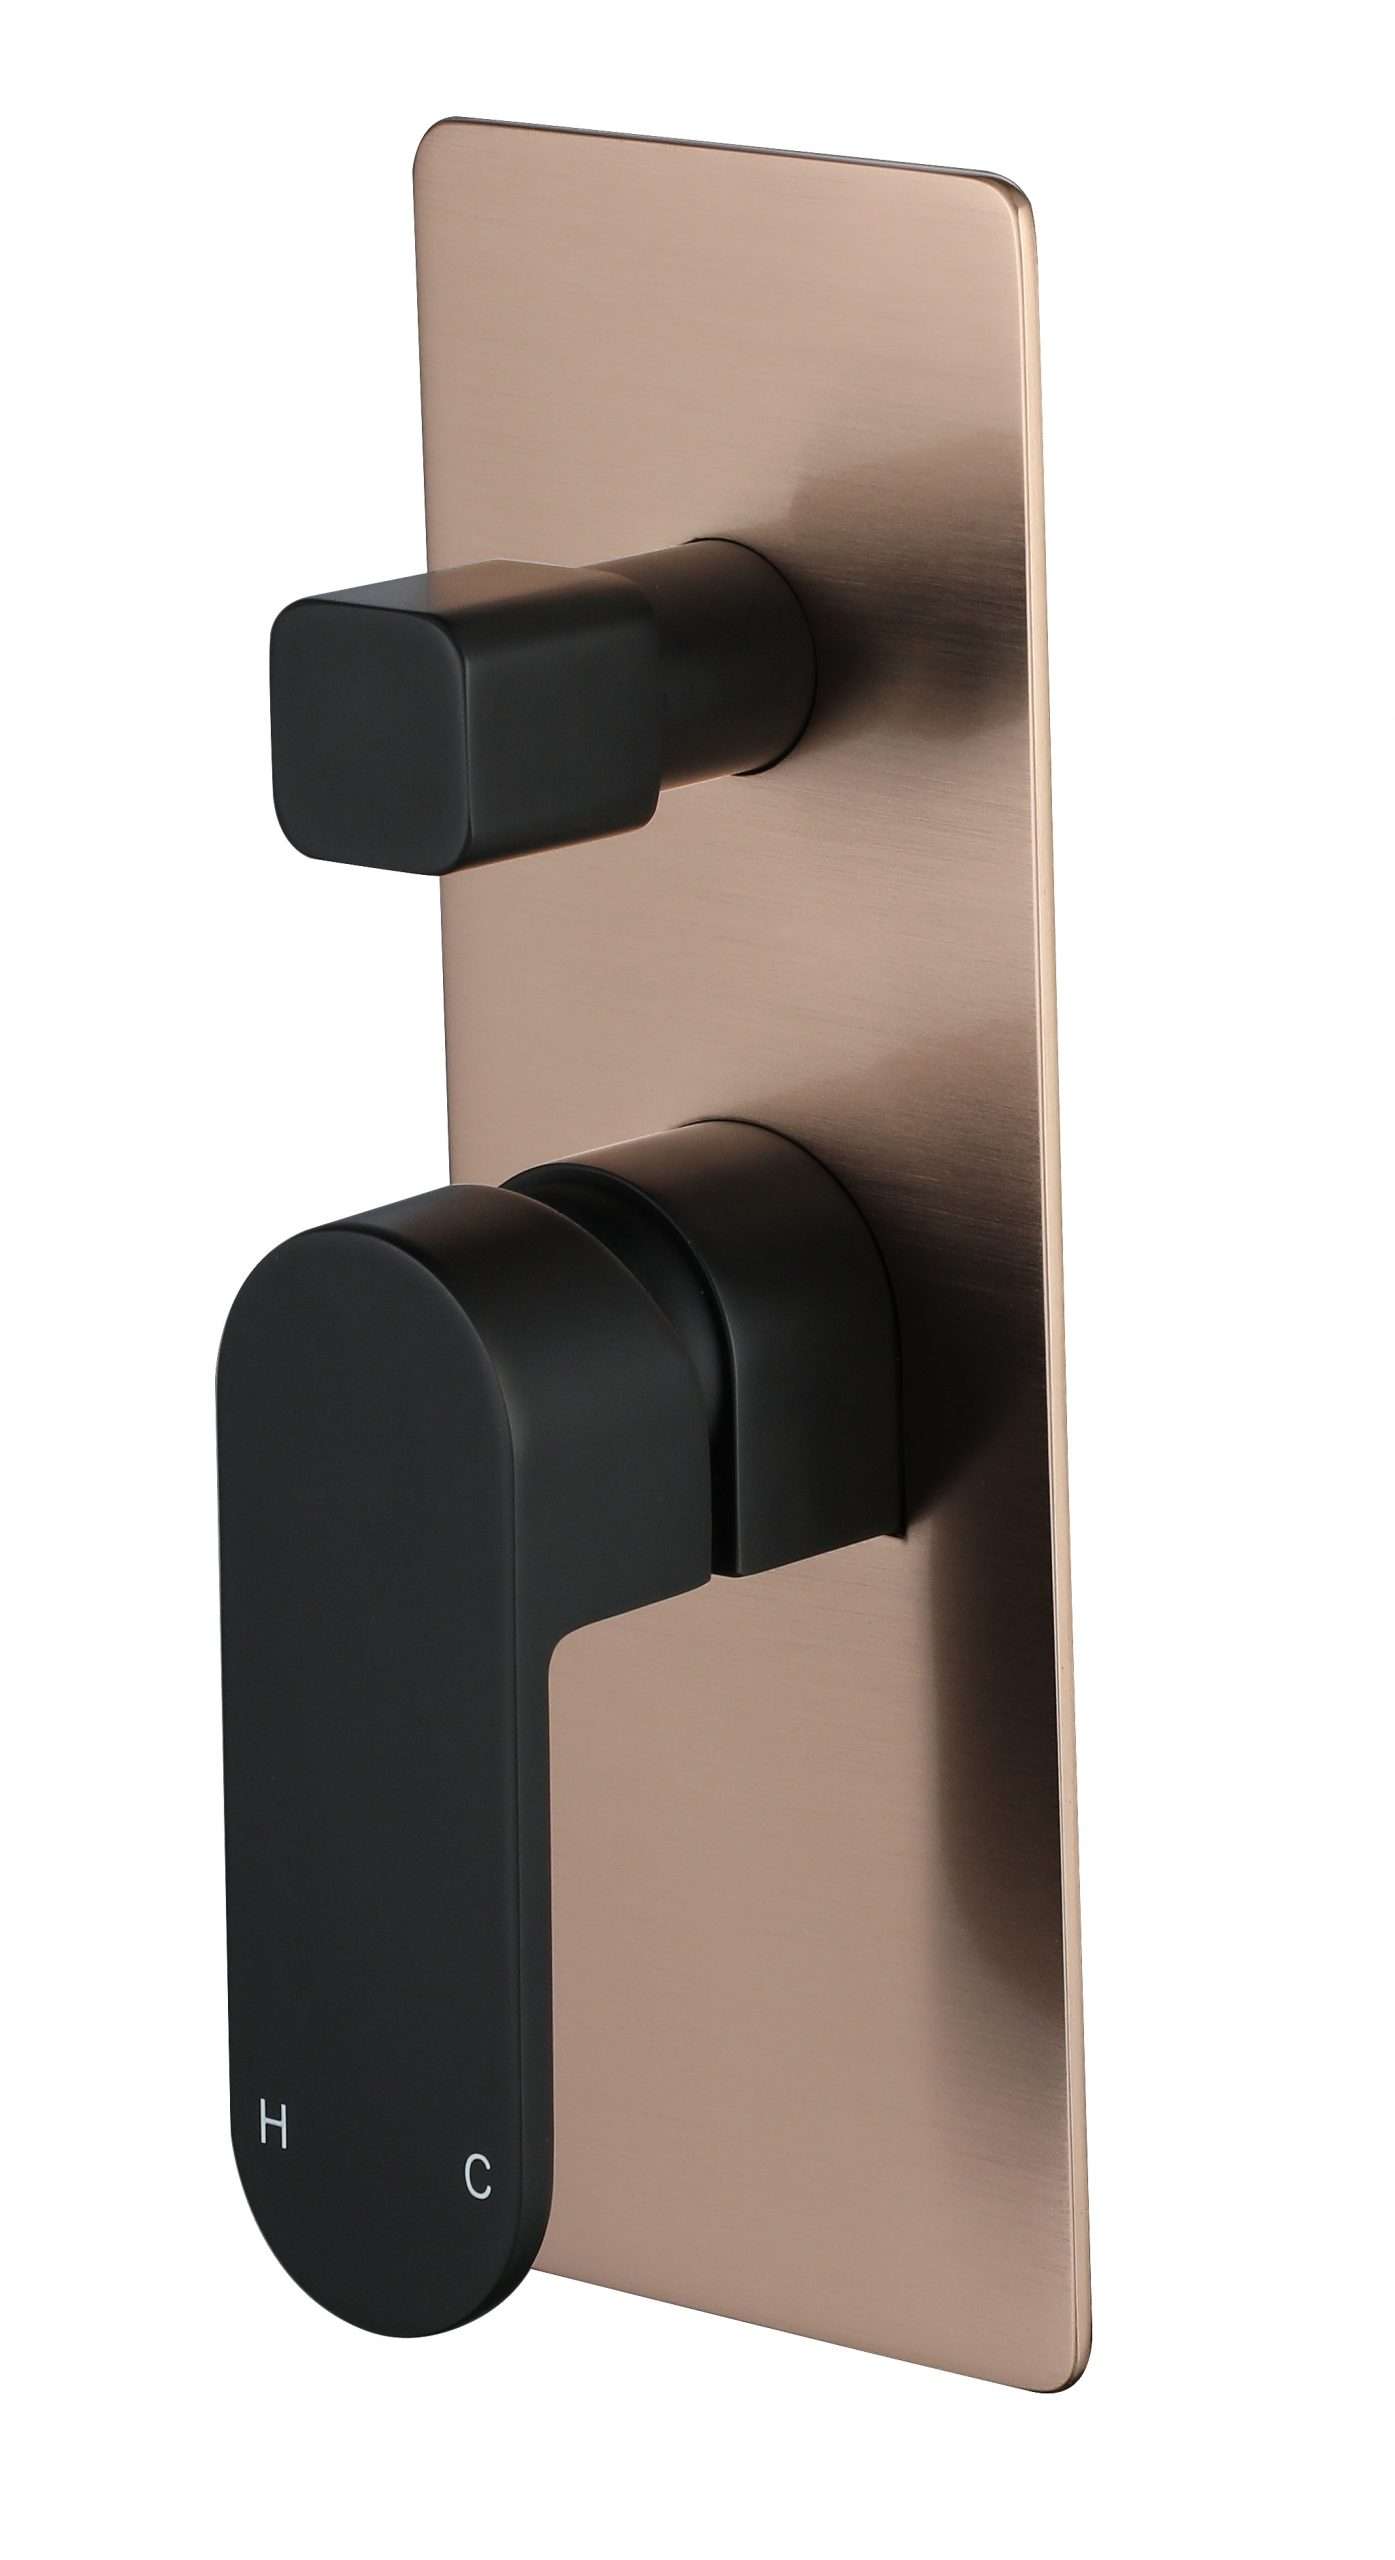 Eva Mini Shower Divertor-Matt Black & Flemish Copper